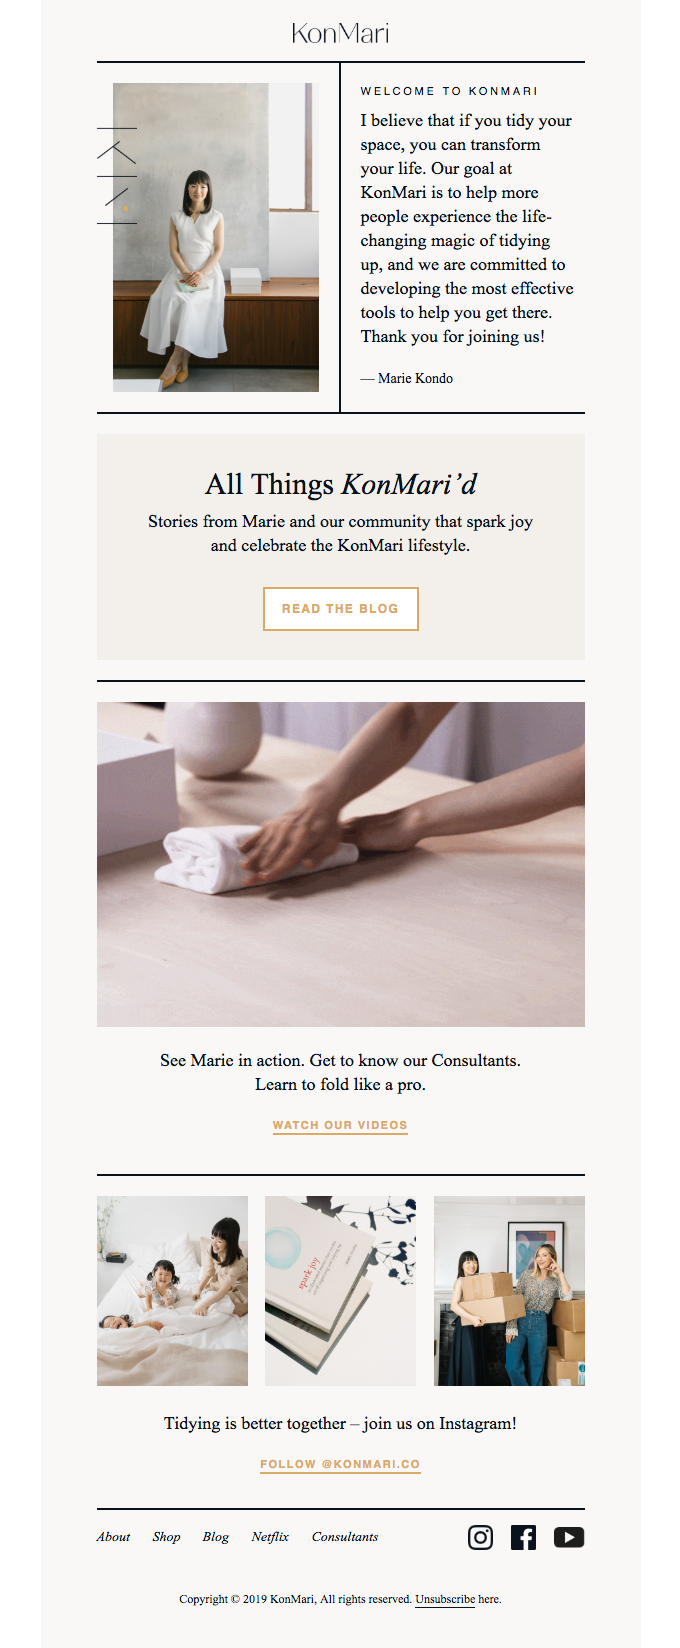 A great welcome series email example.